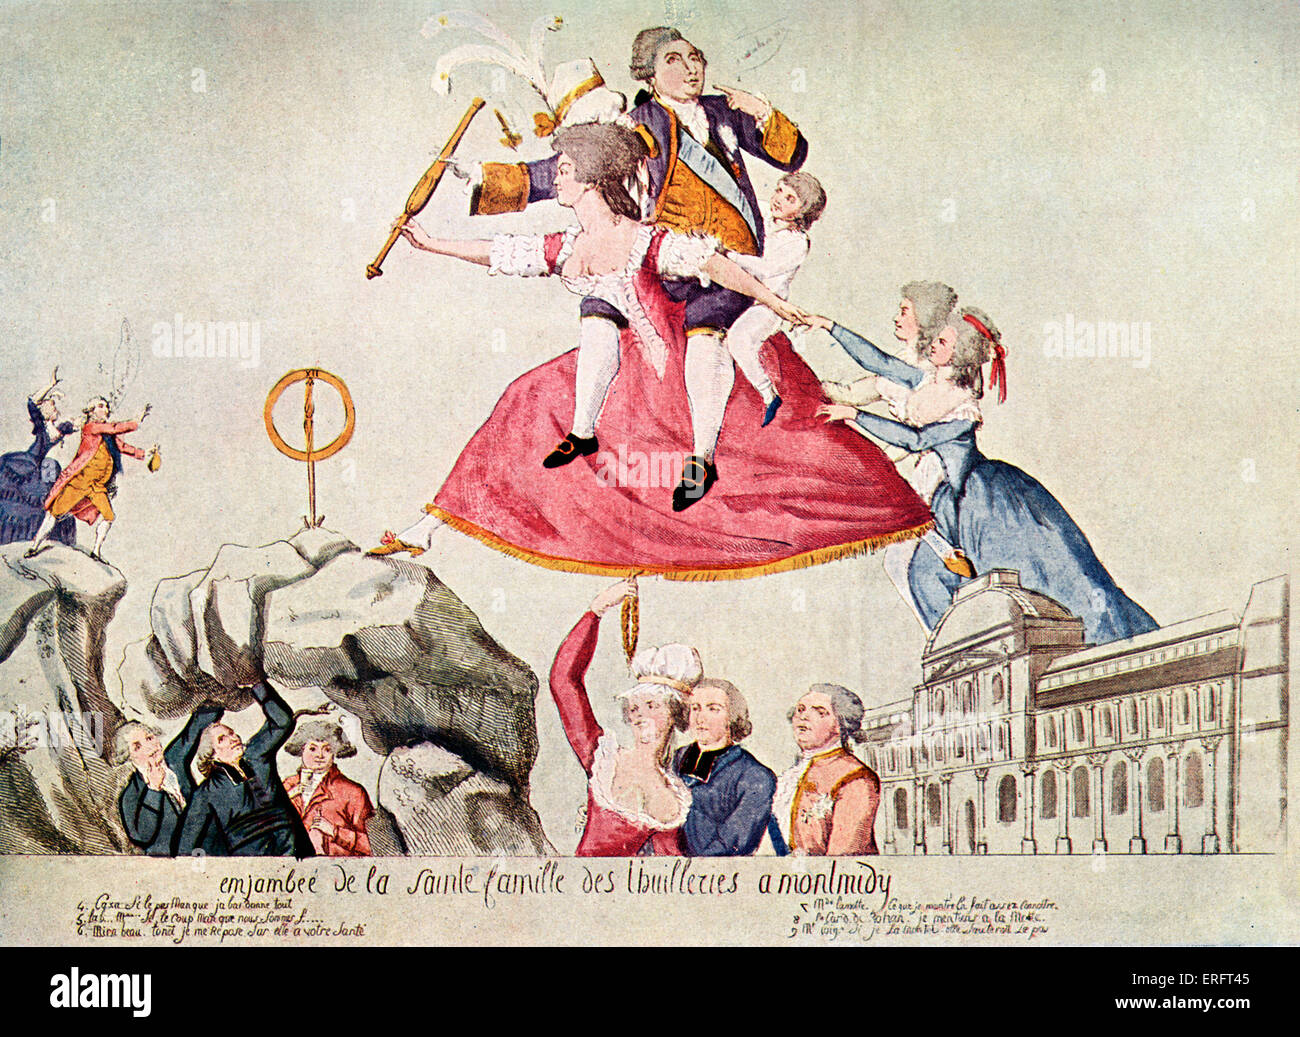 King Louis XVI and his family attempting to flee from Paris, 21 June 1791. Caricature from flyer published in 1792. - Stock Image